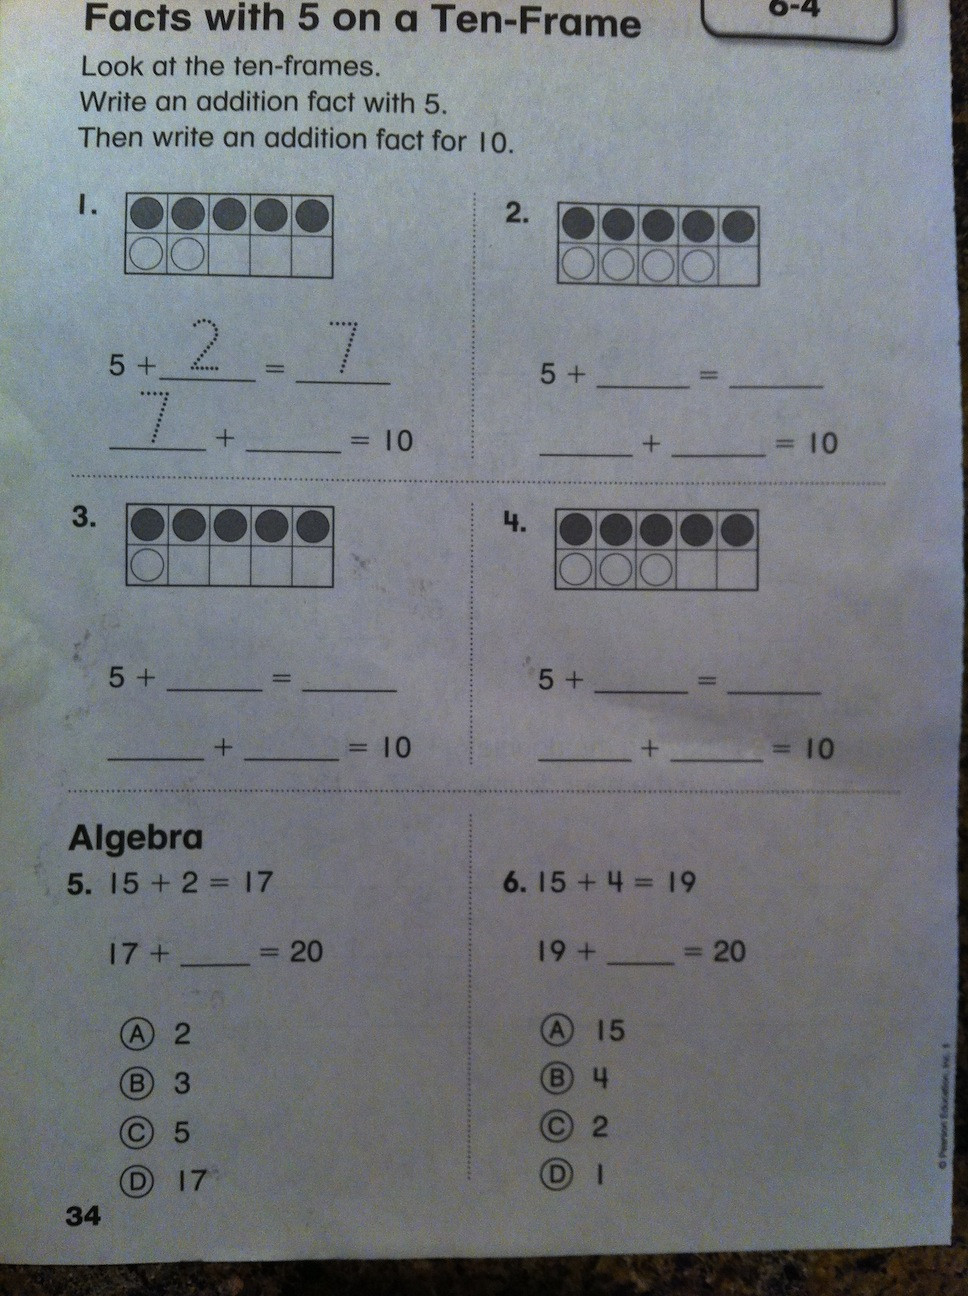 Envision Math 1st Grade Worksheets Mathematical Practices Free Math Worksheets for Grade 1